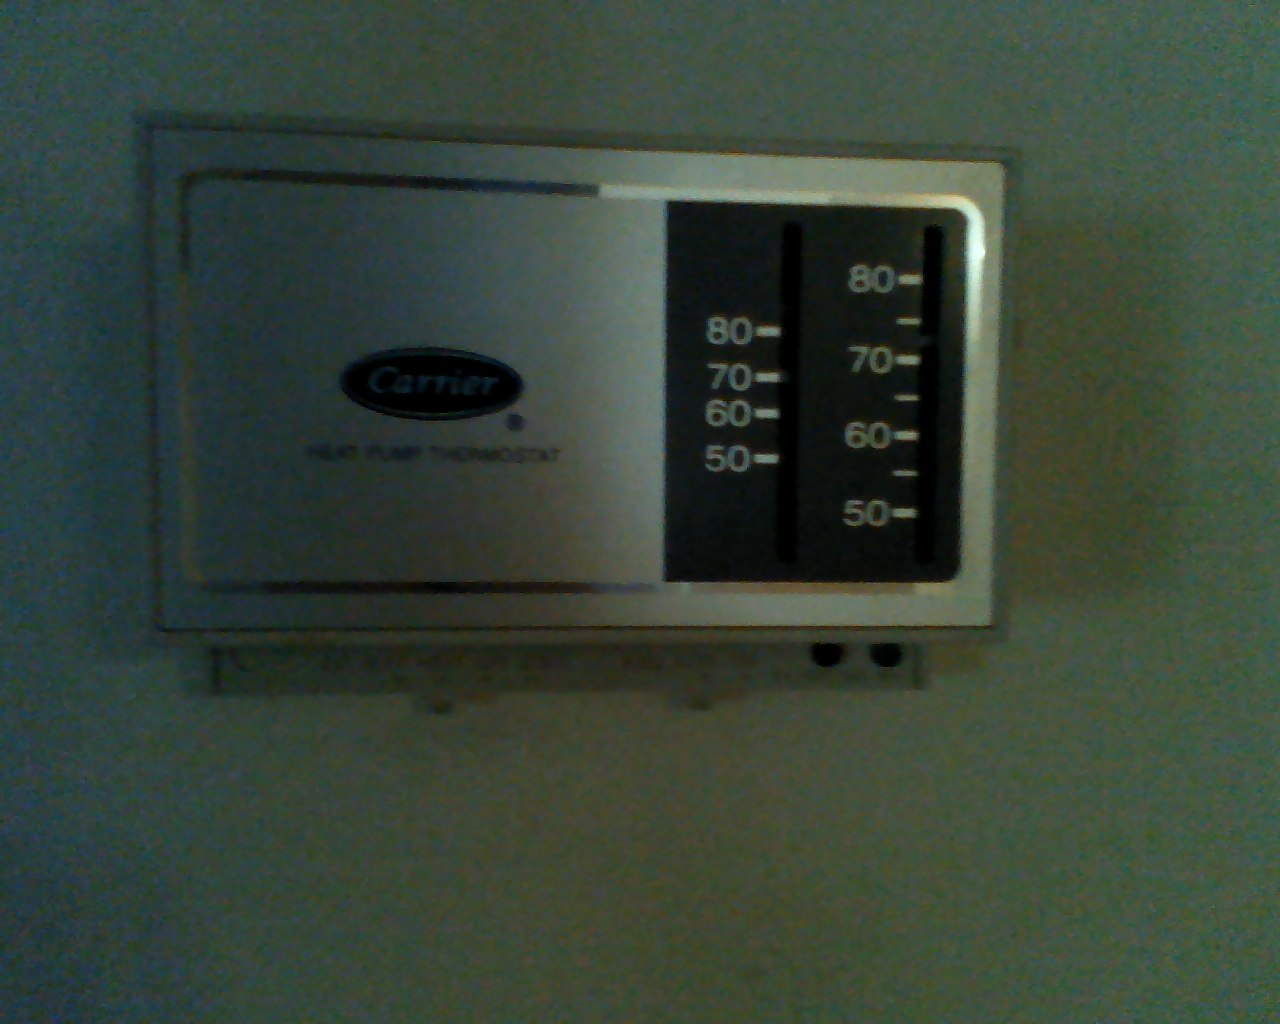 thermostat wiring diagram for electric furnace inside of a leaf bryant plus 80